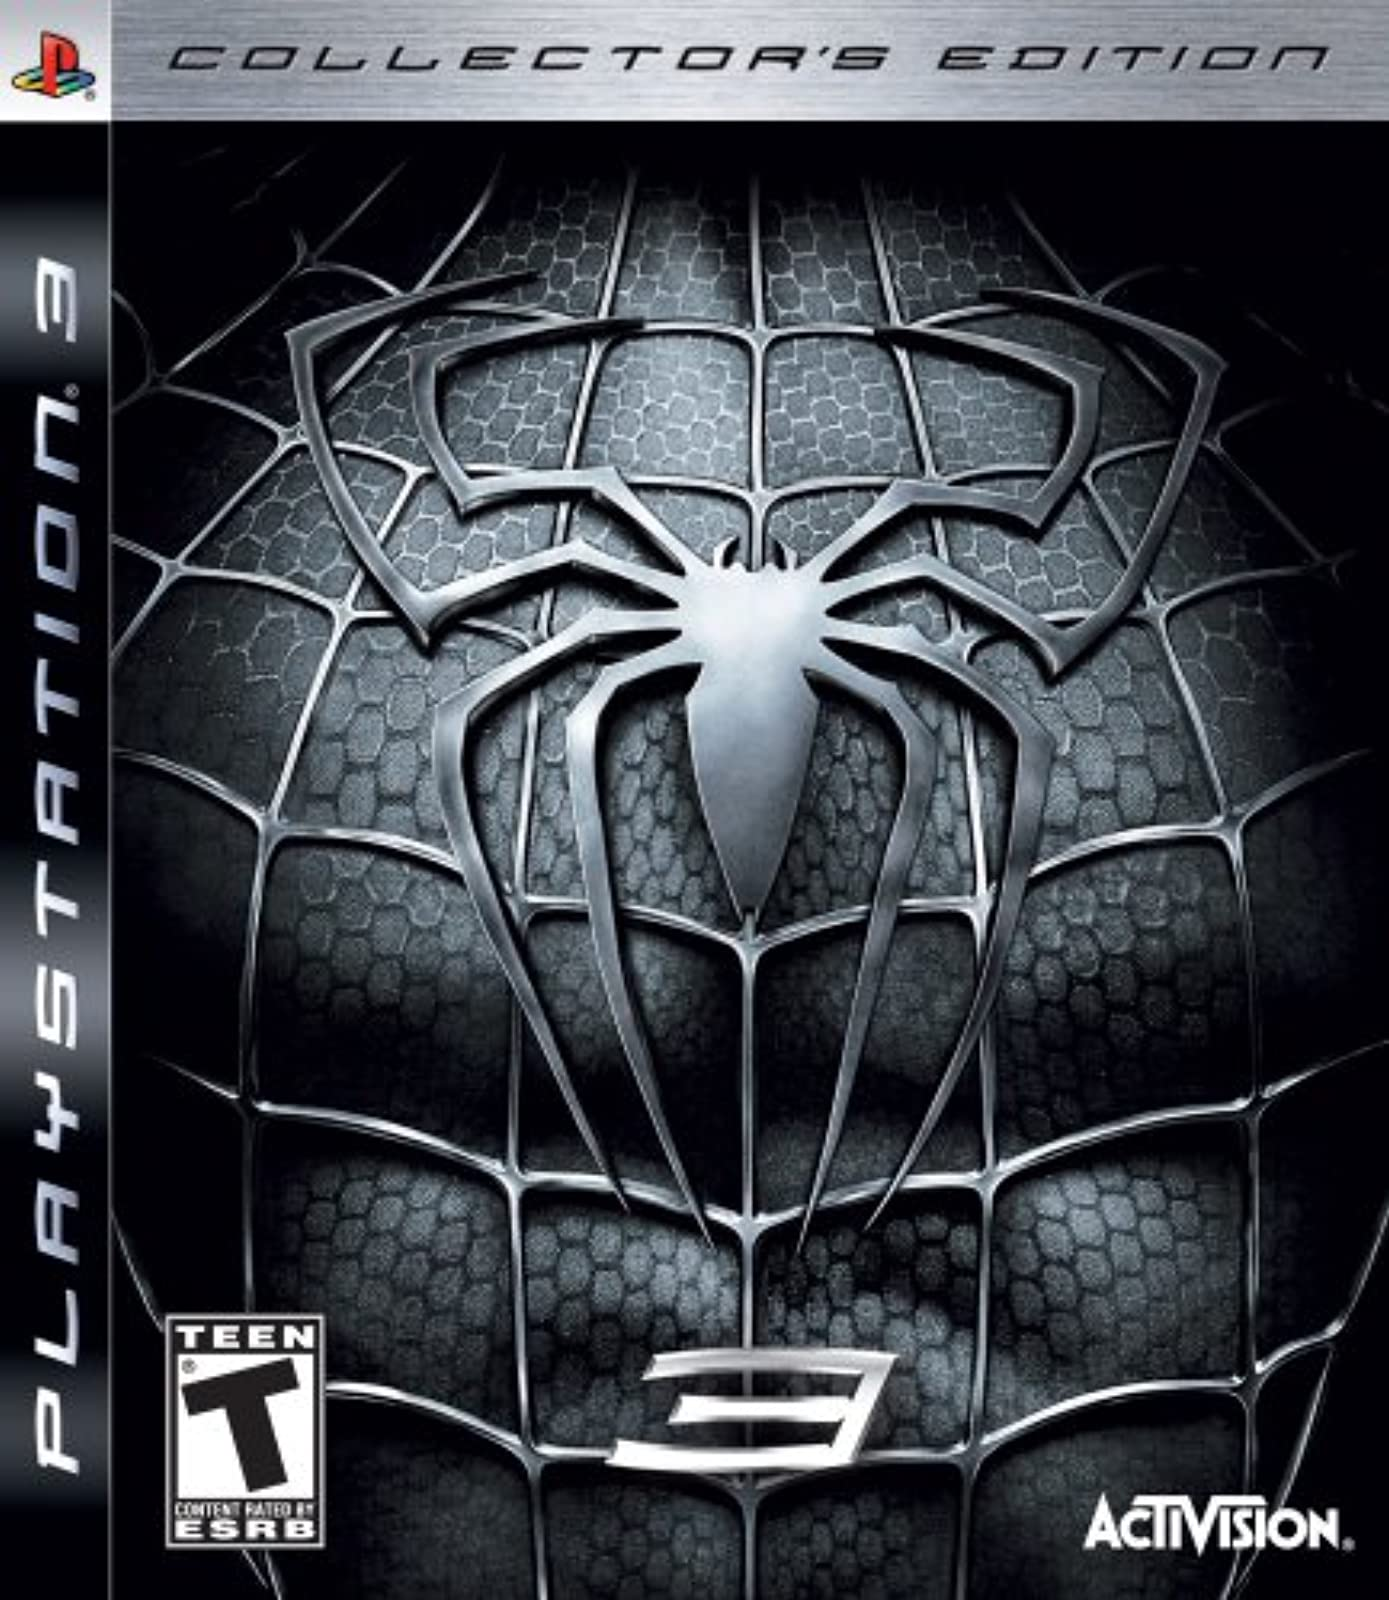 Spider-Man 3 Edition For PlayStation 3 PS3